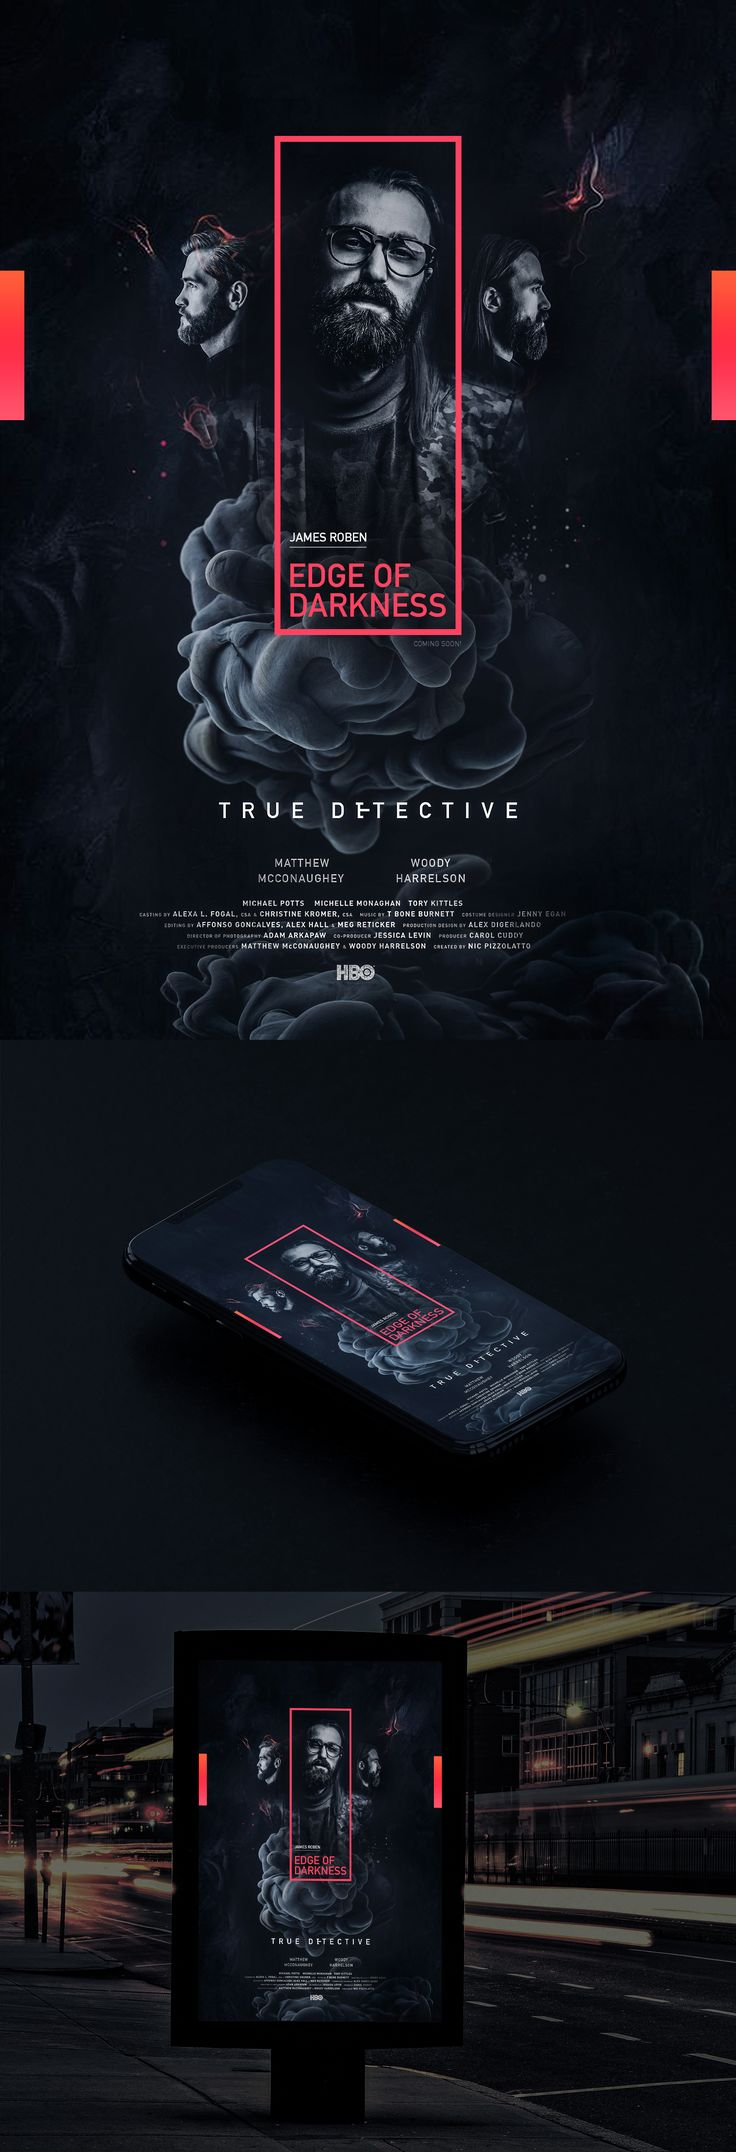 EDGE OF DARKNESS POSTER DESIGN on Behance